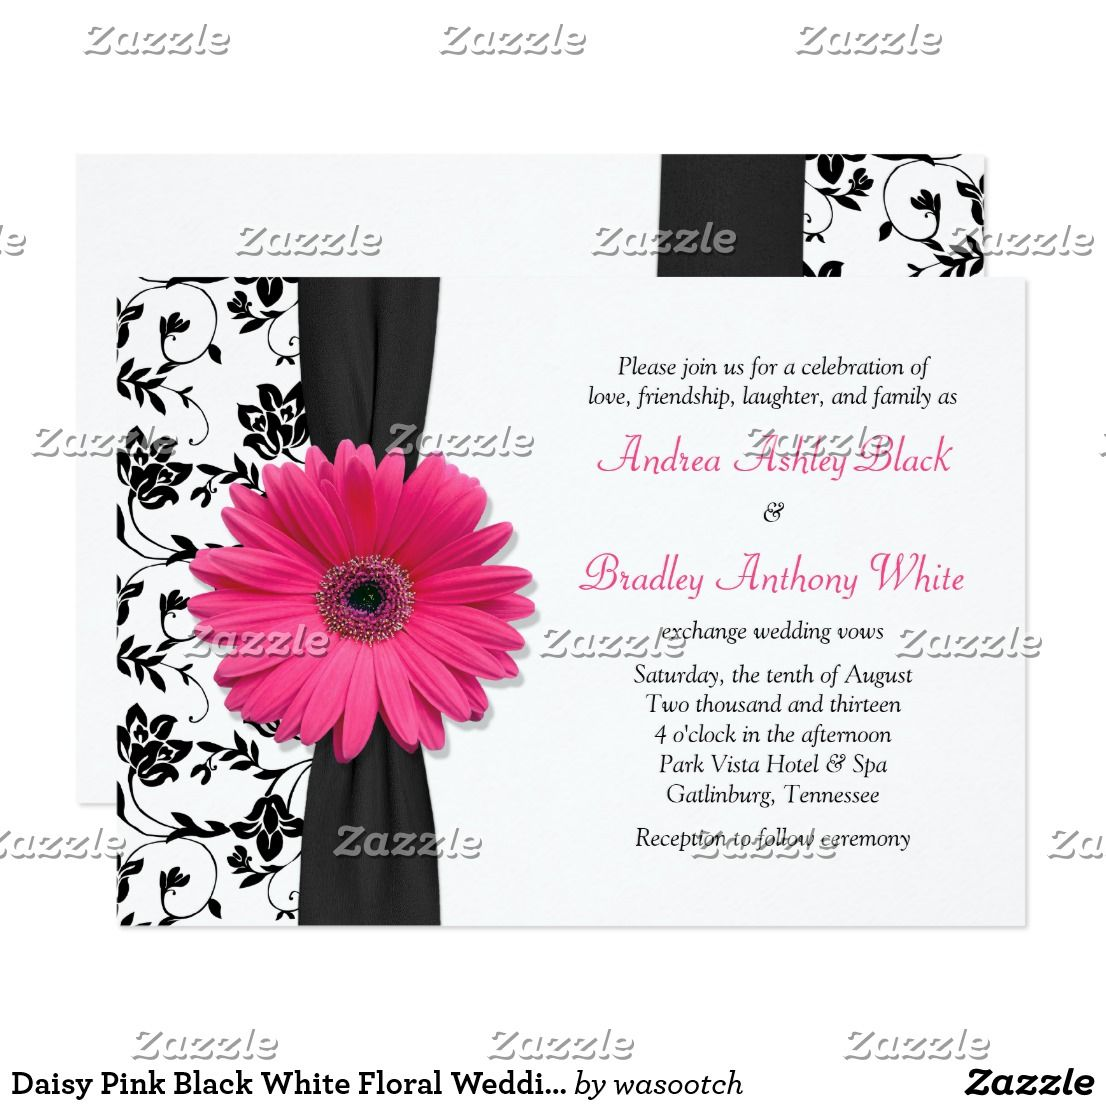 Daisy Pink Black White Floral Wedding Invitation Zazzle Com Floral Wedding Invitations Damask Wedding Theme Daisy Wedding Invitations